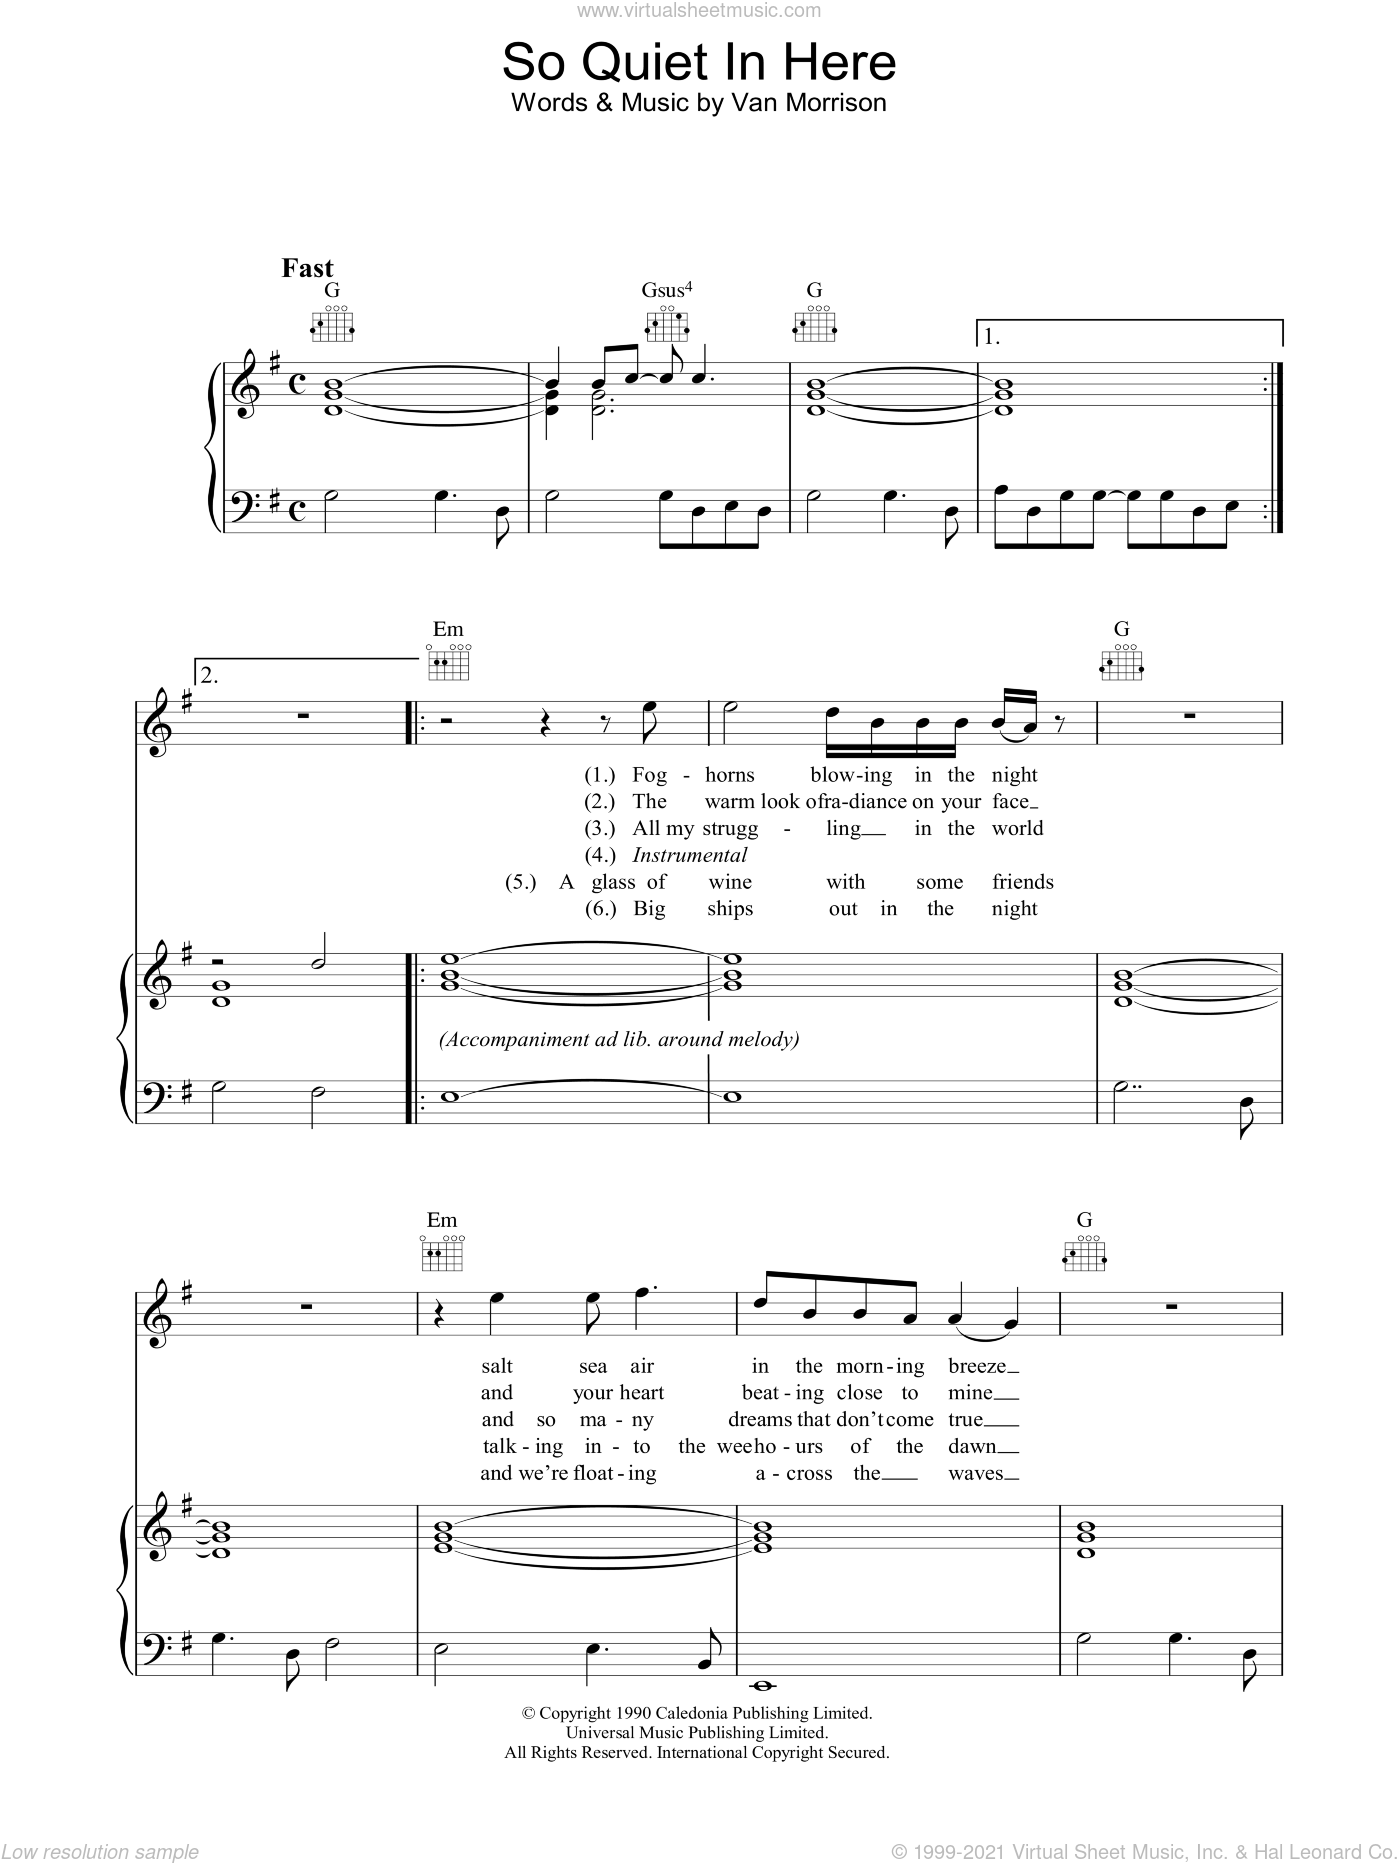 So Quiet In Here sheet music for voice, piano or guitar by Van Morrison, intermediate voice, piano or guitar. Score Image Preview.